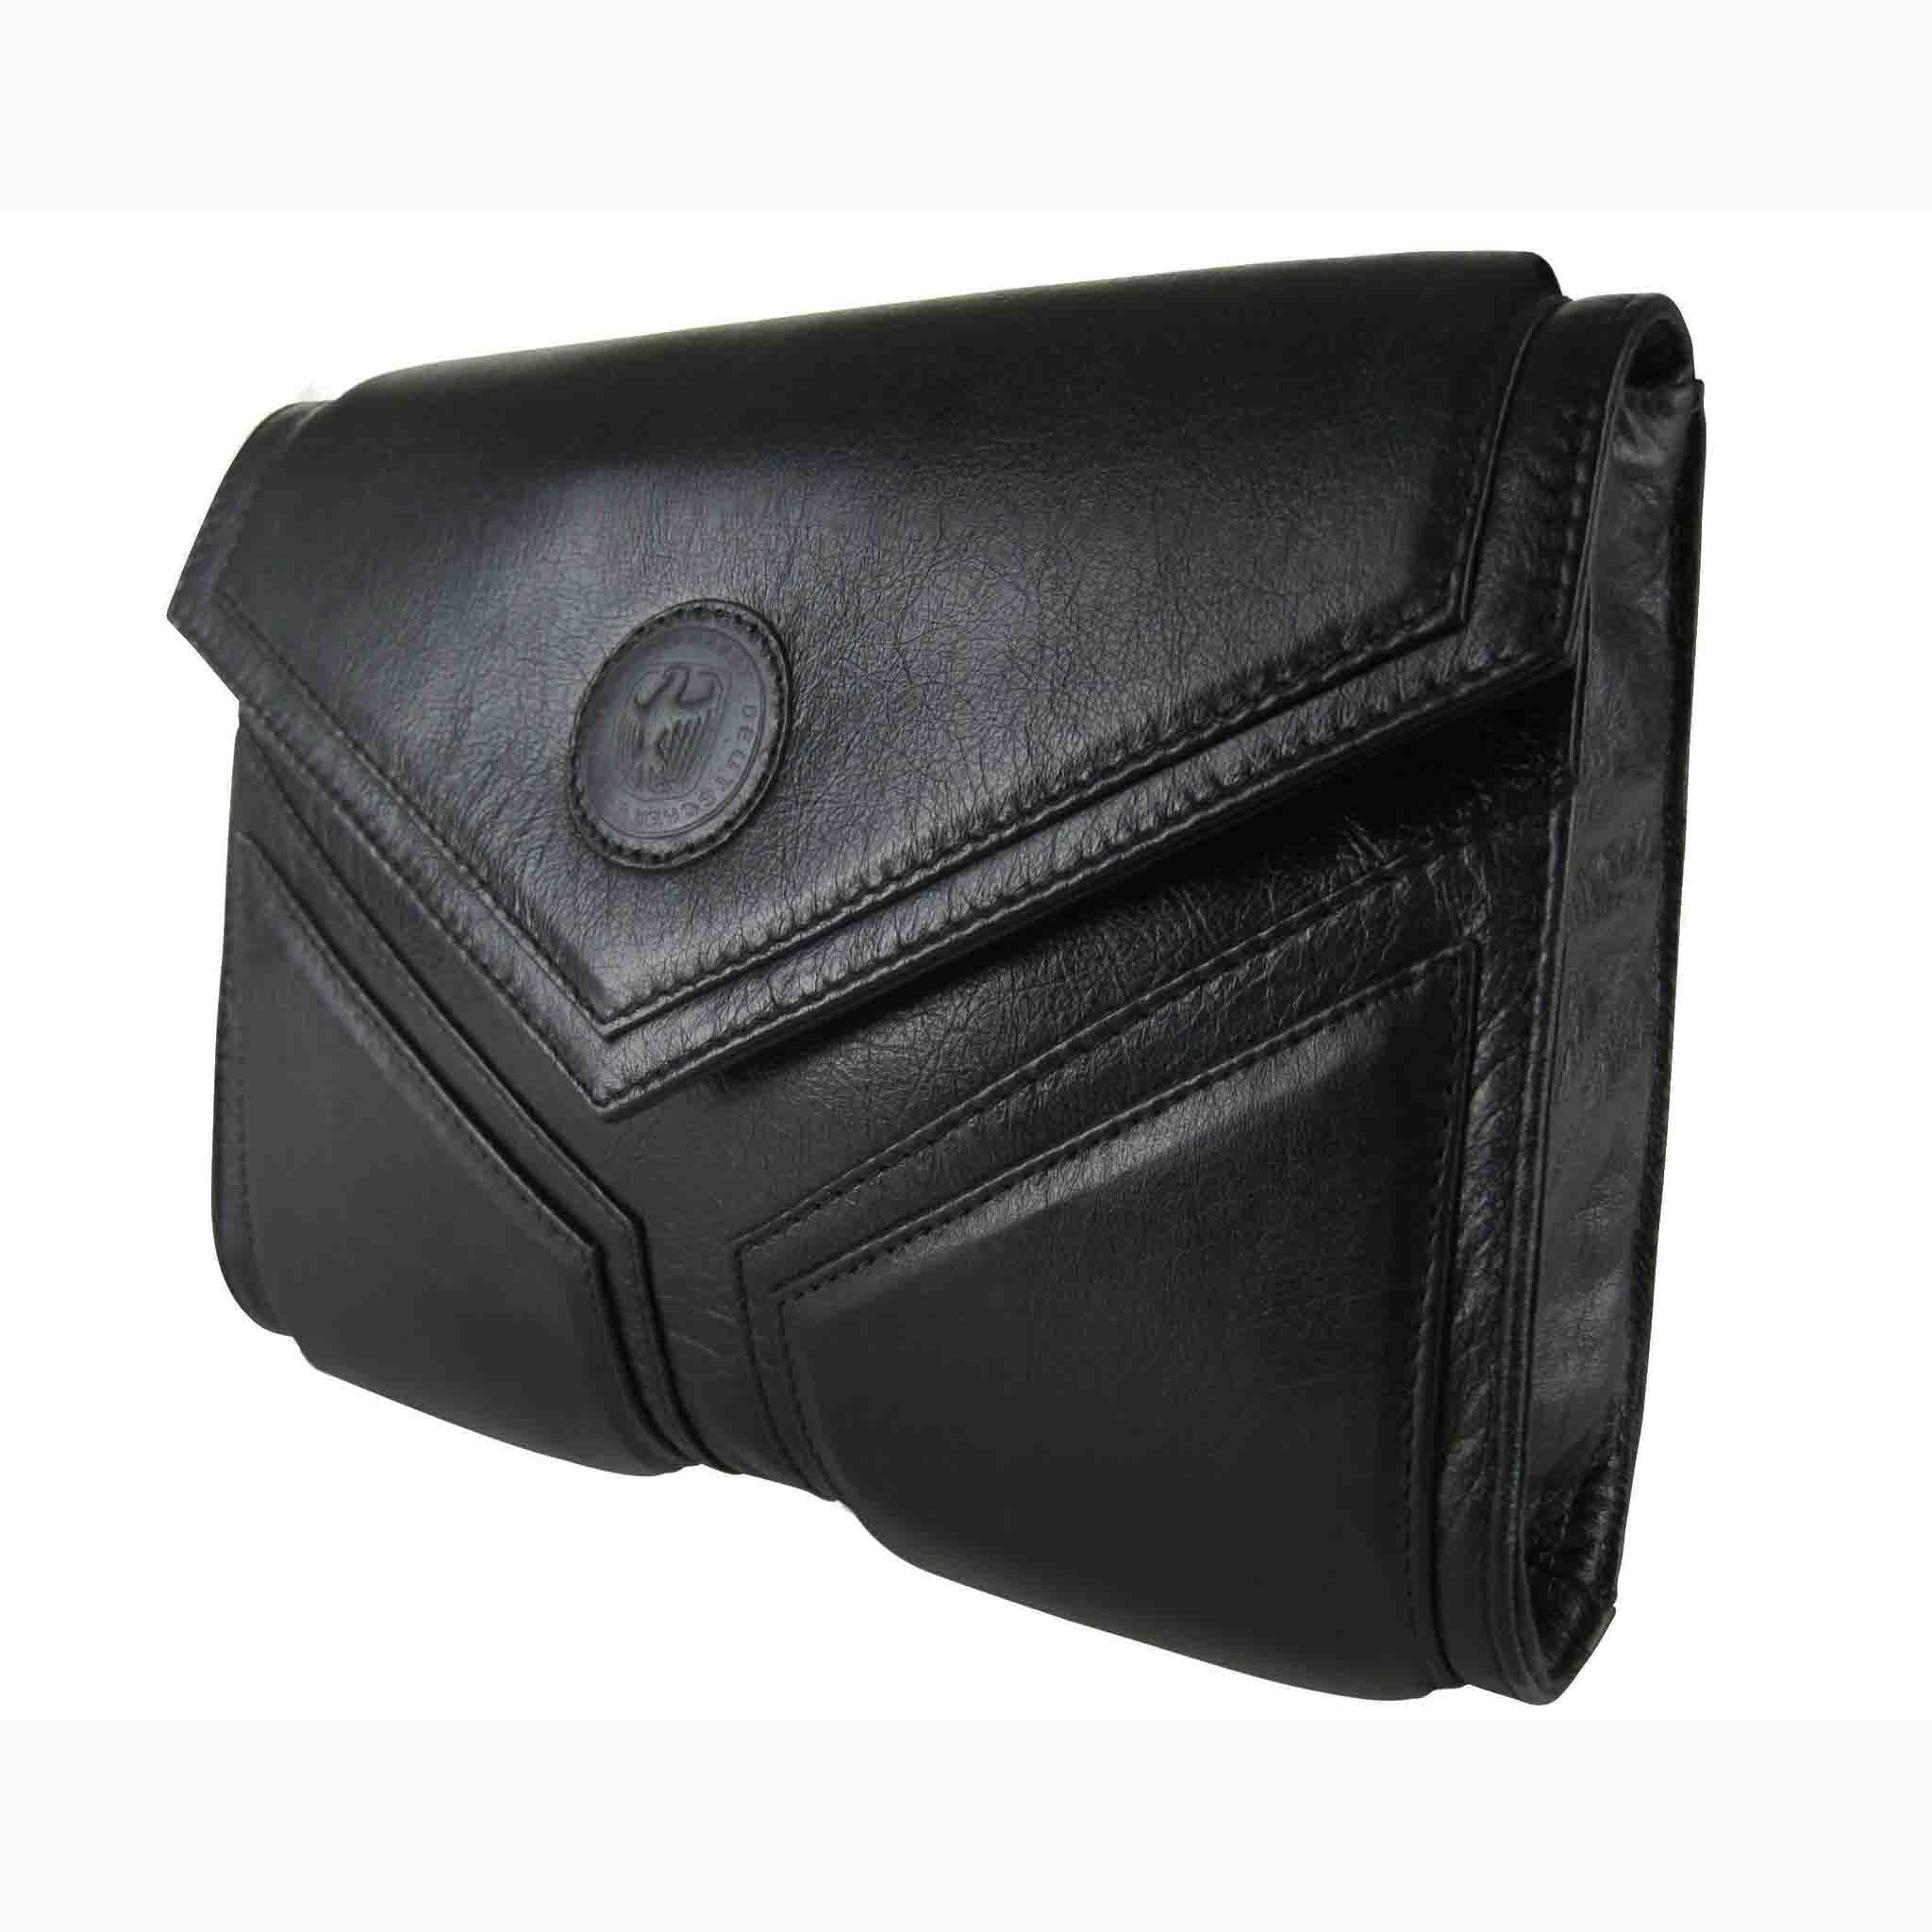 BLACK LEATHER CLUTCH WOMEN'S BAG DREIECK